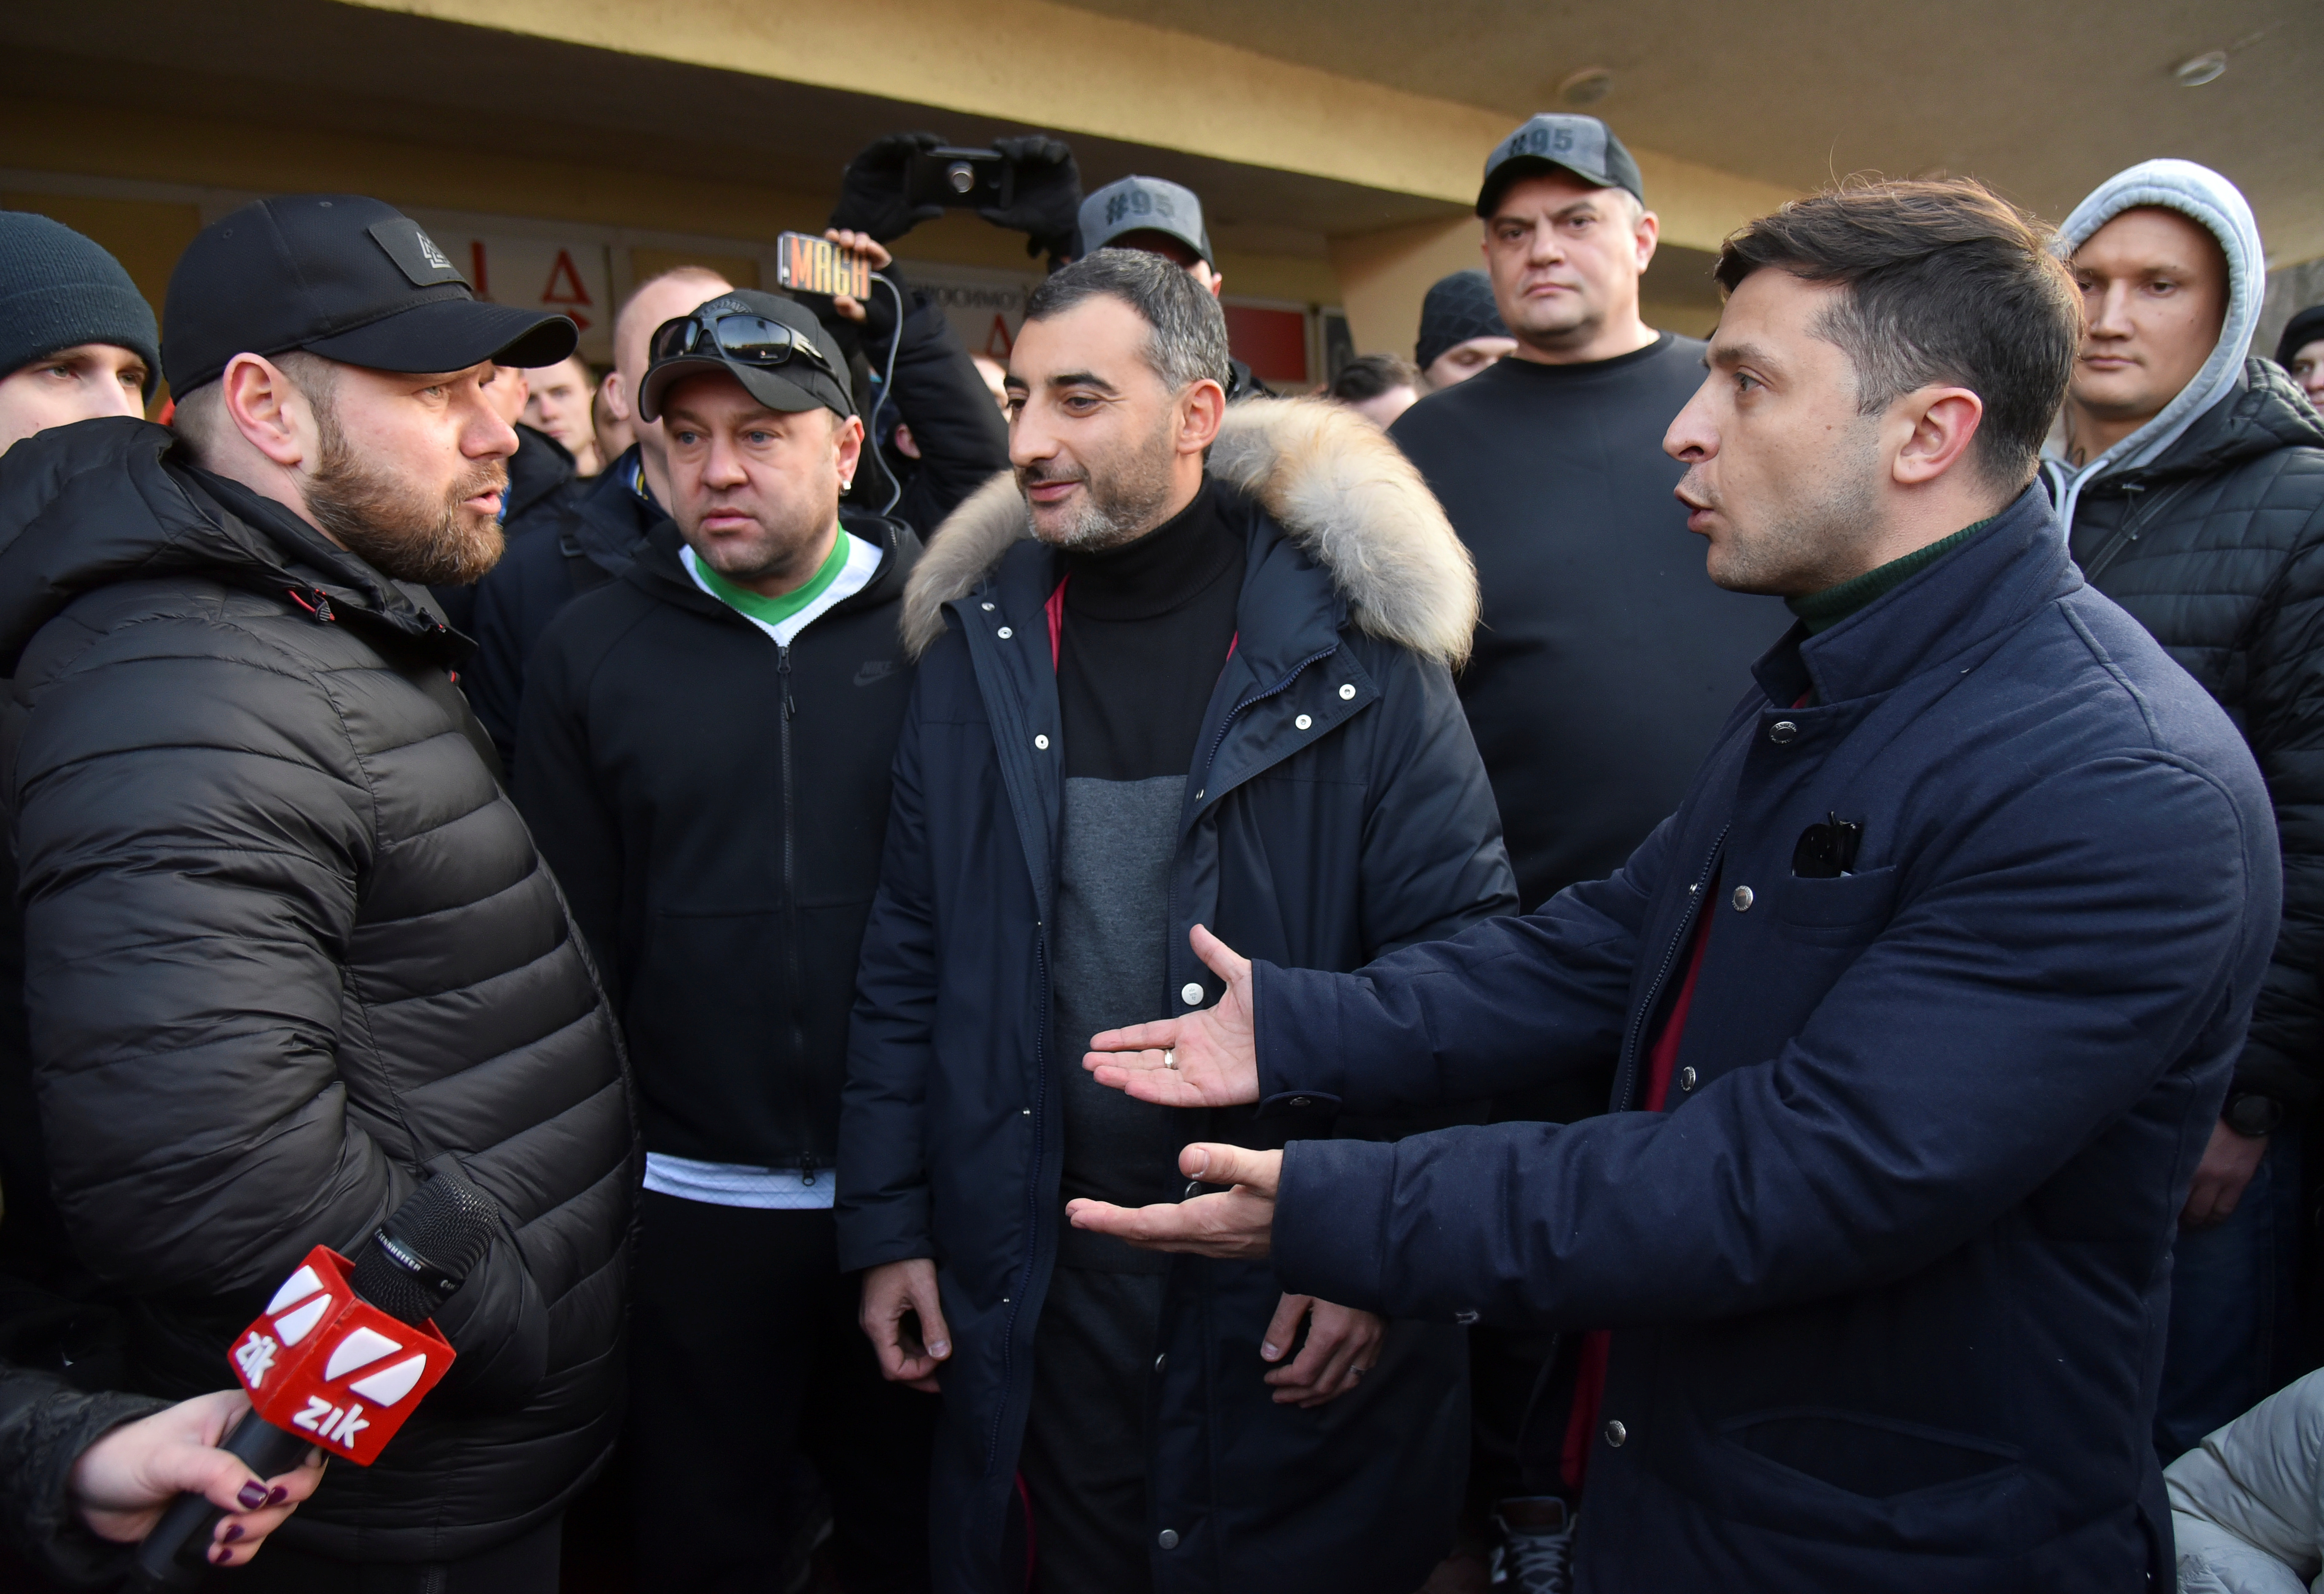 Volodymyr Zelenskiy (R), Ukrainian actor and candidate in the upcoming presidential election, argues with his opponents, who stage a protest prior to Zelenskiy's concert in Lviv, Ukraine February 8, 2019. REUTERS/Mykola Tys